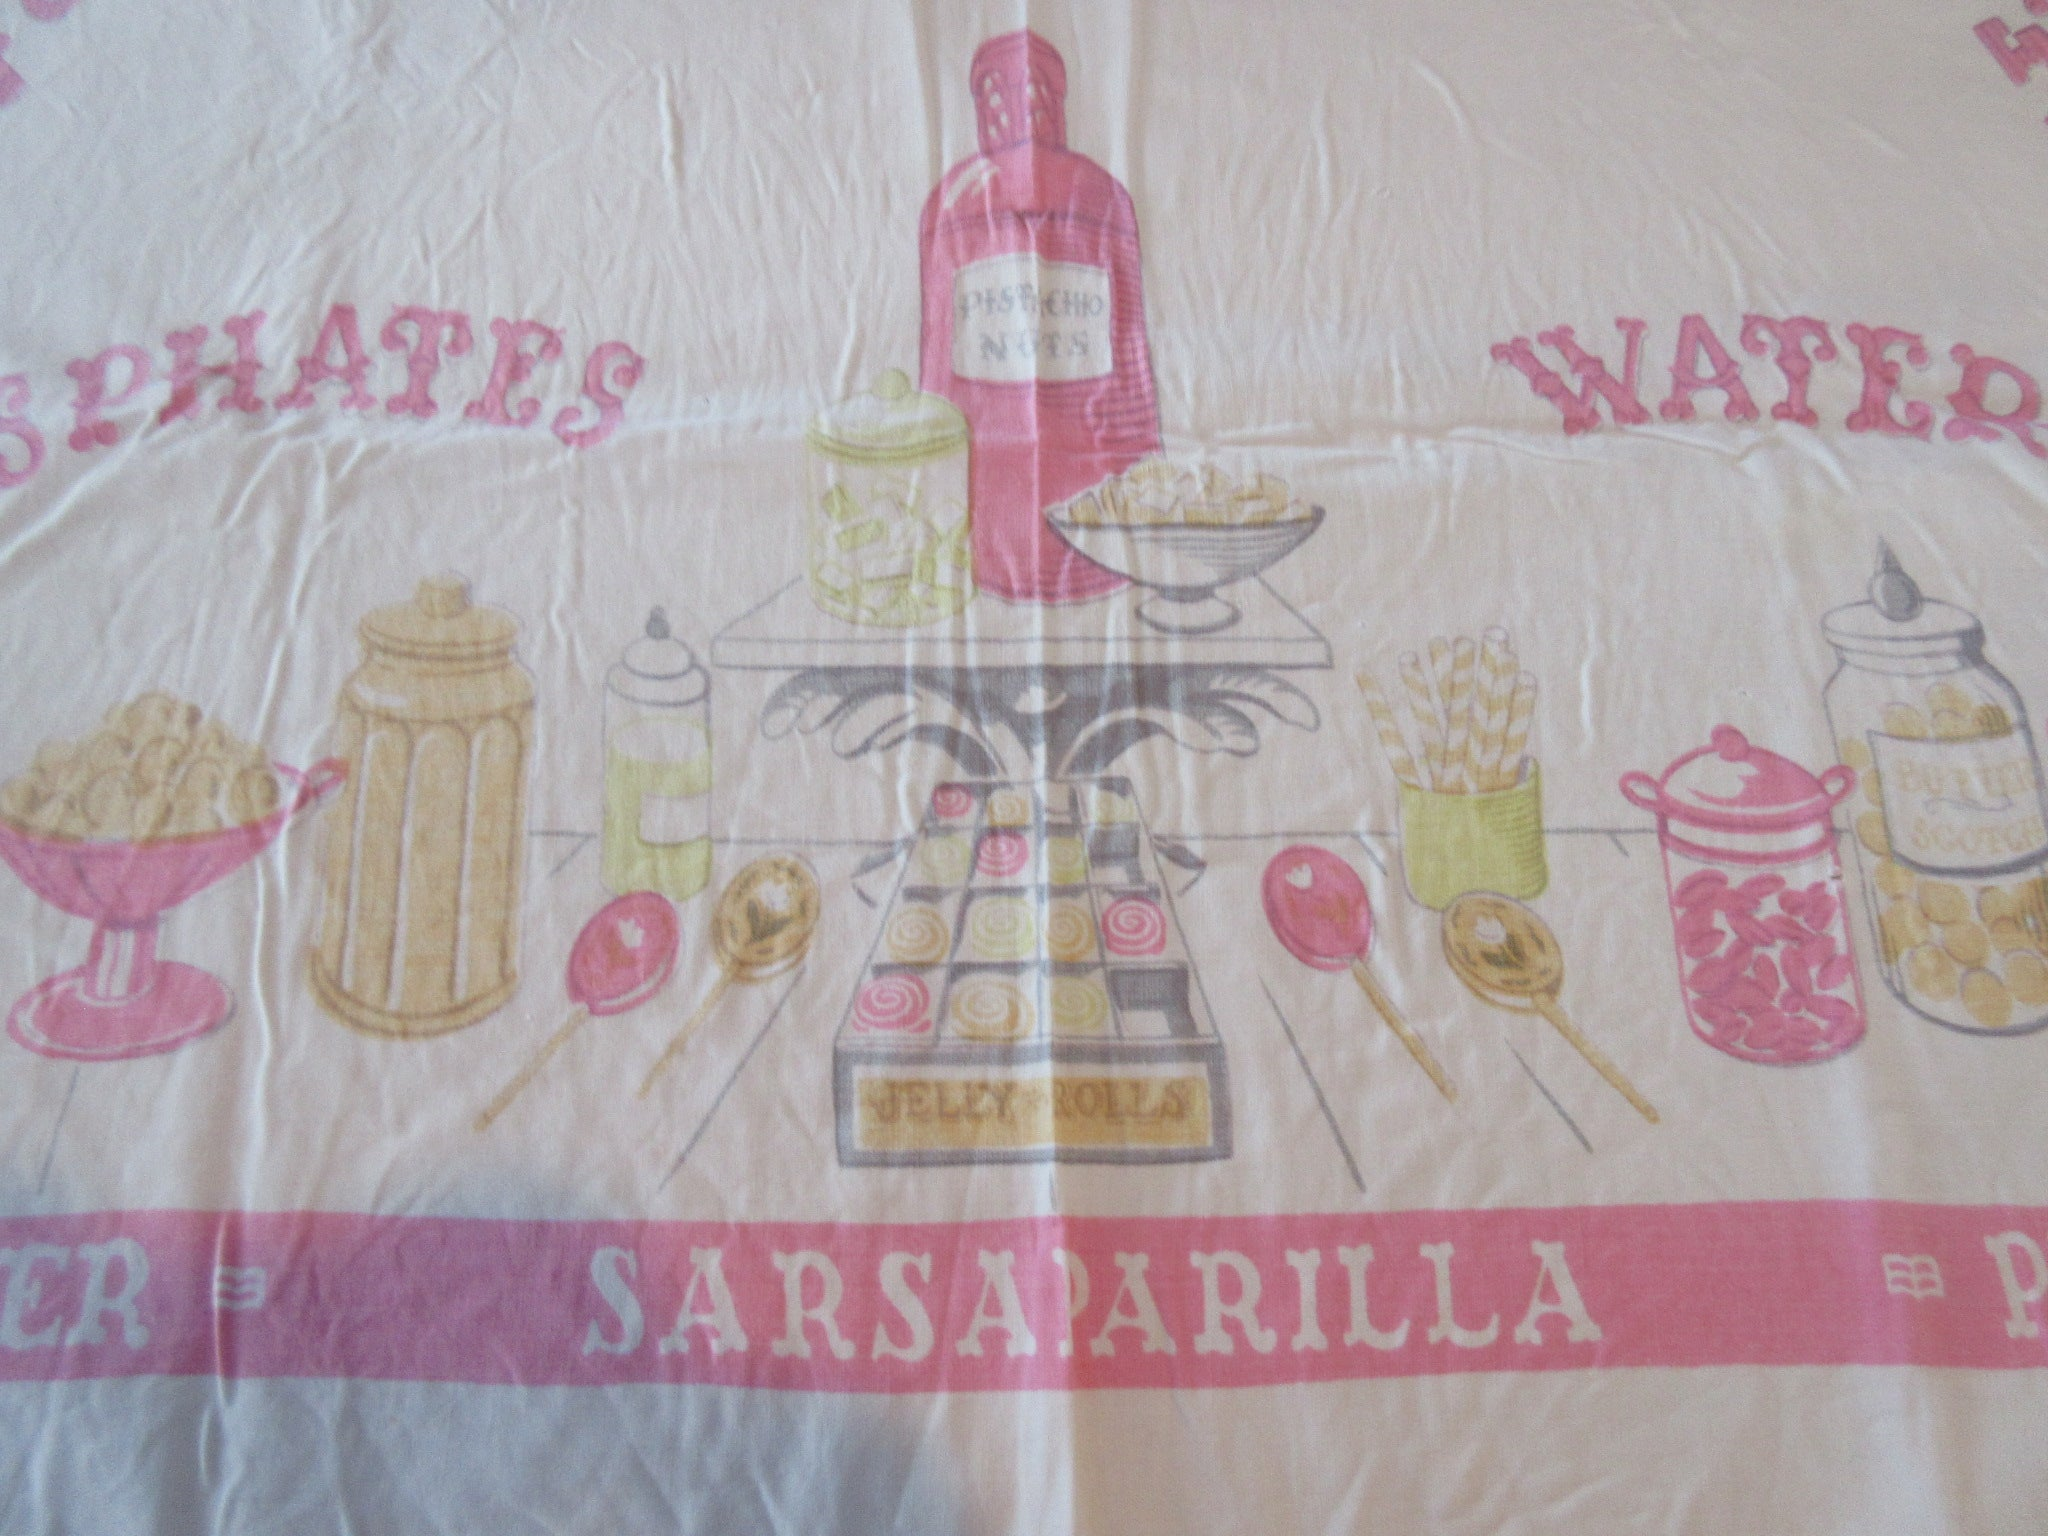 Faded Ice Cream Parlor CUTTER Novelty Vintage Printed Tablecloth